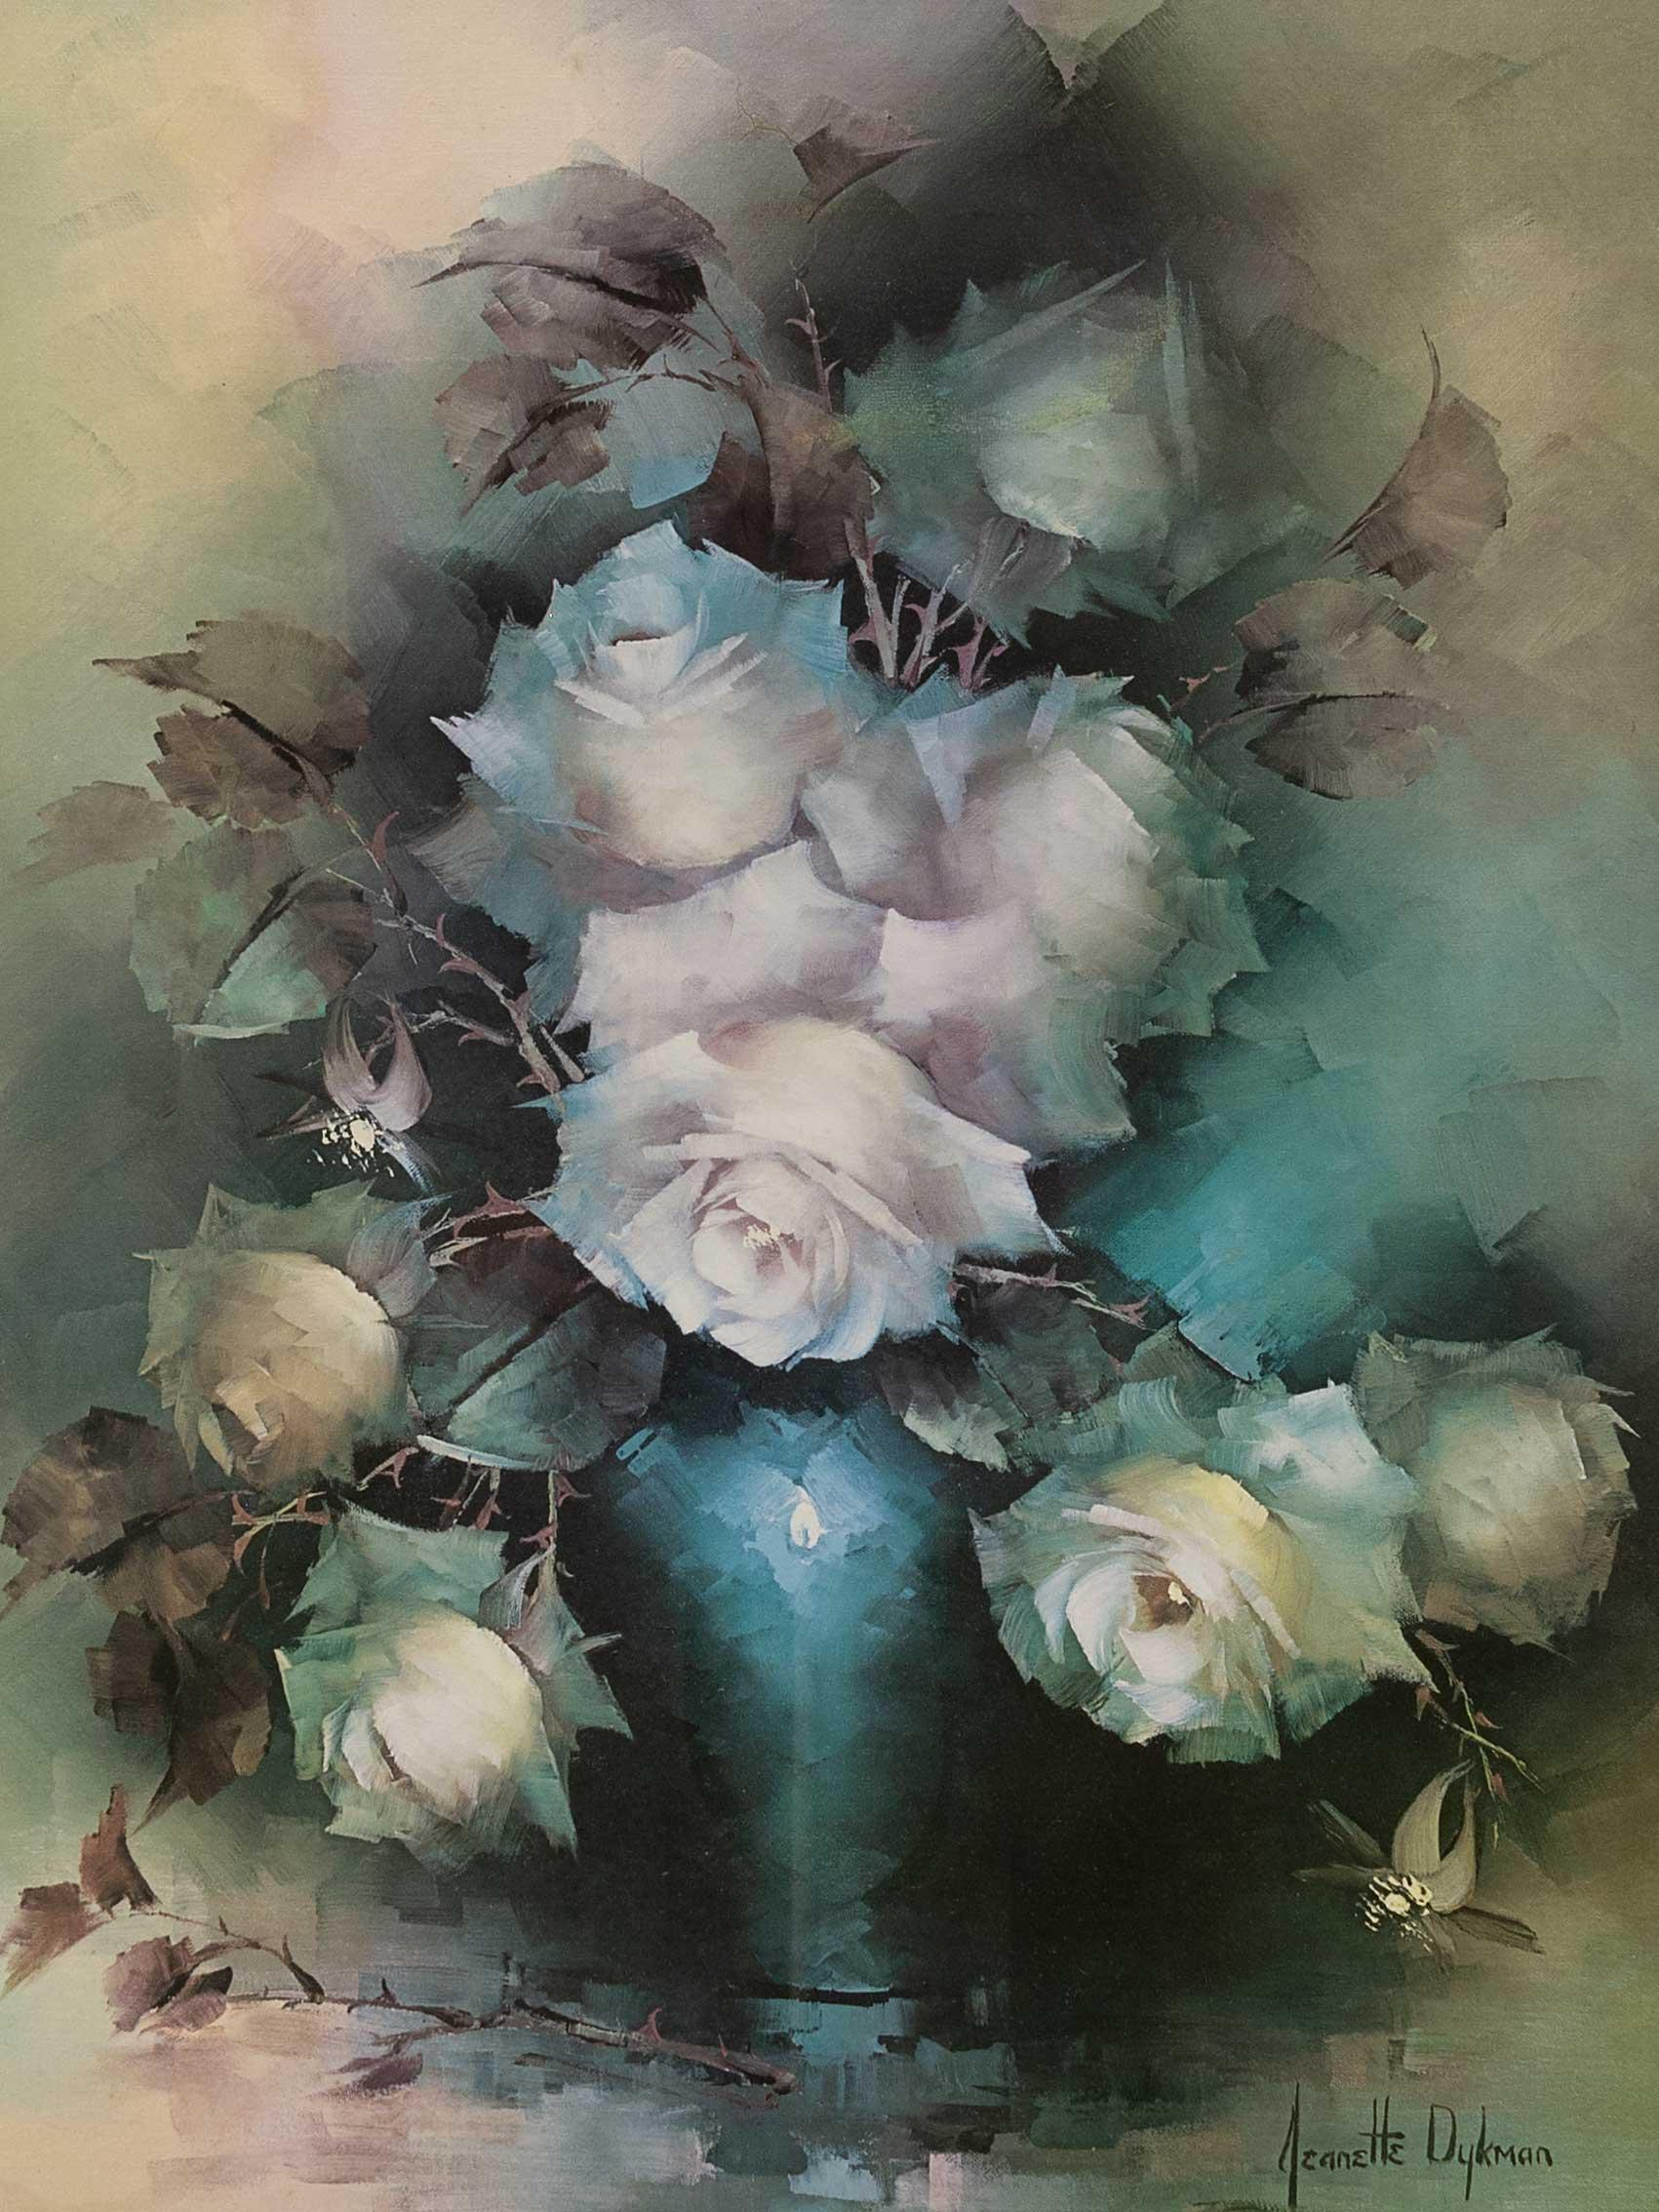 Jeanette Dykman (SA, born 1938) Oil, Still Life Roses, Signed, 50 x 37